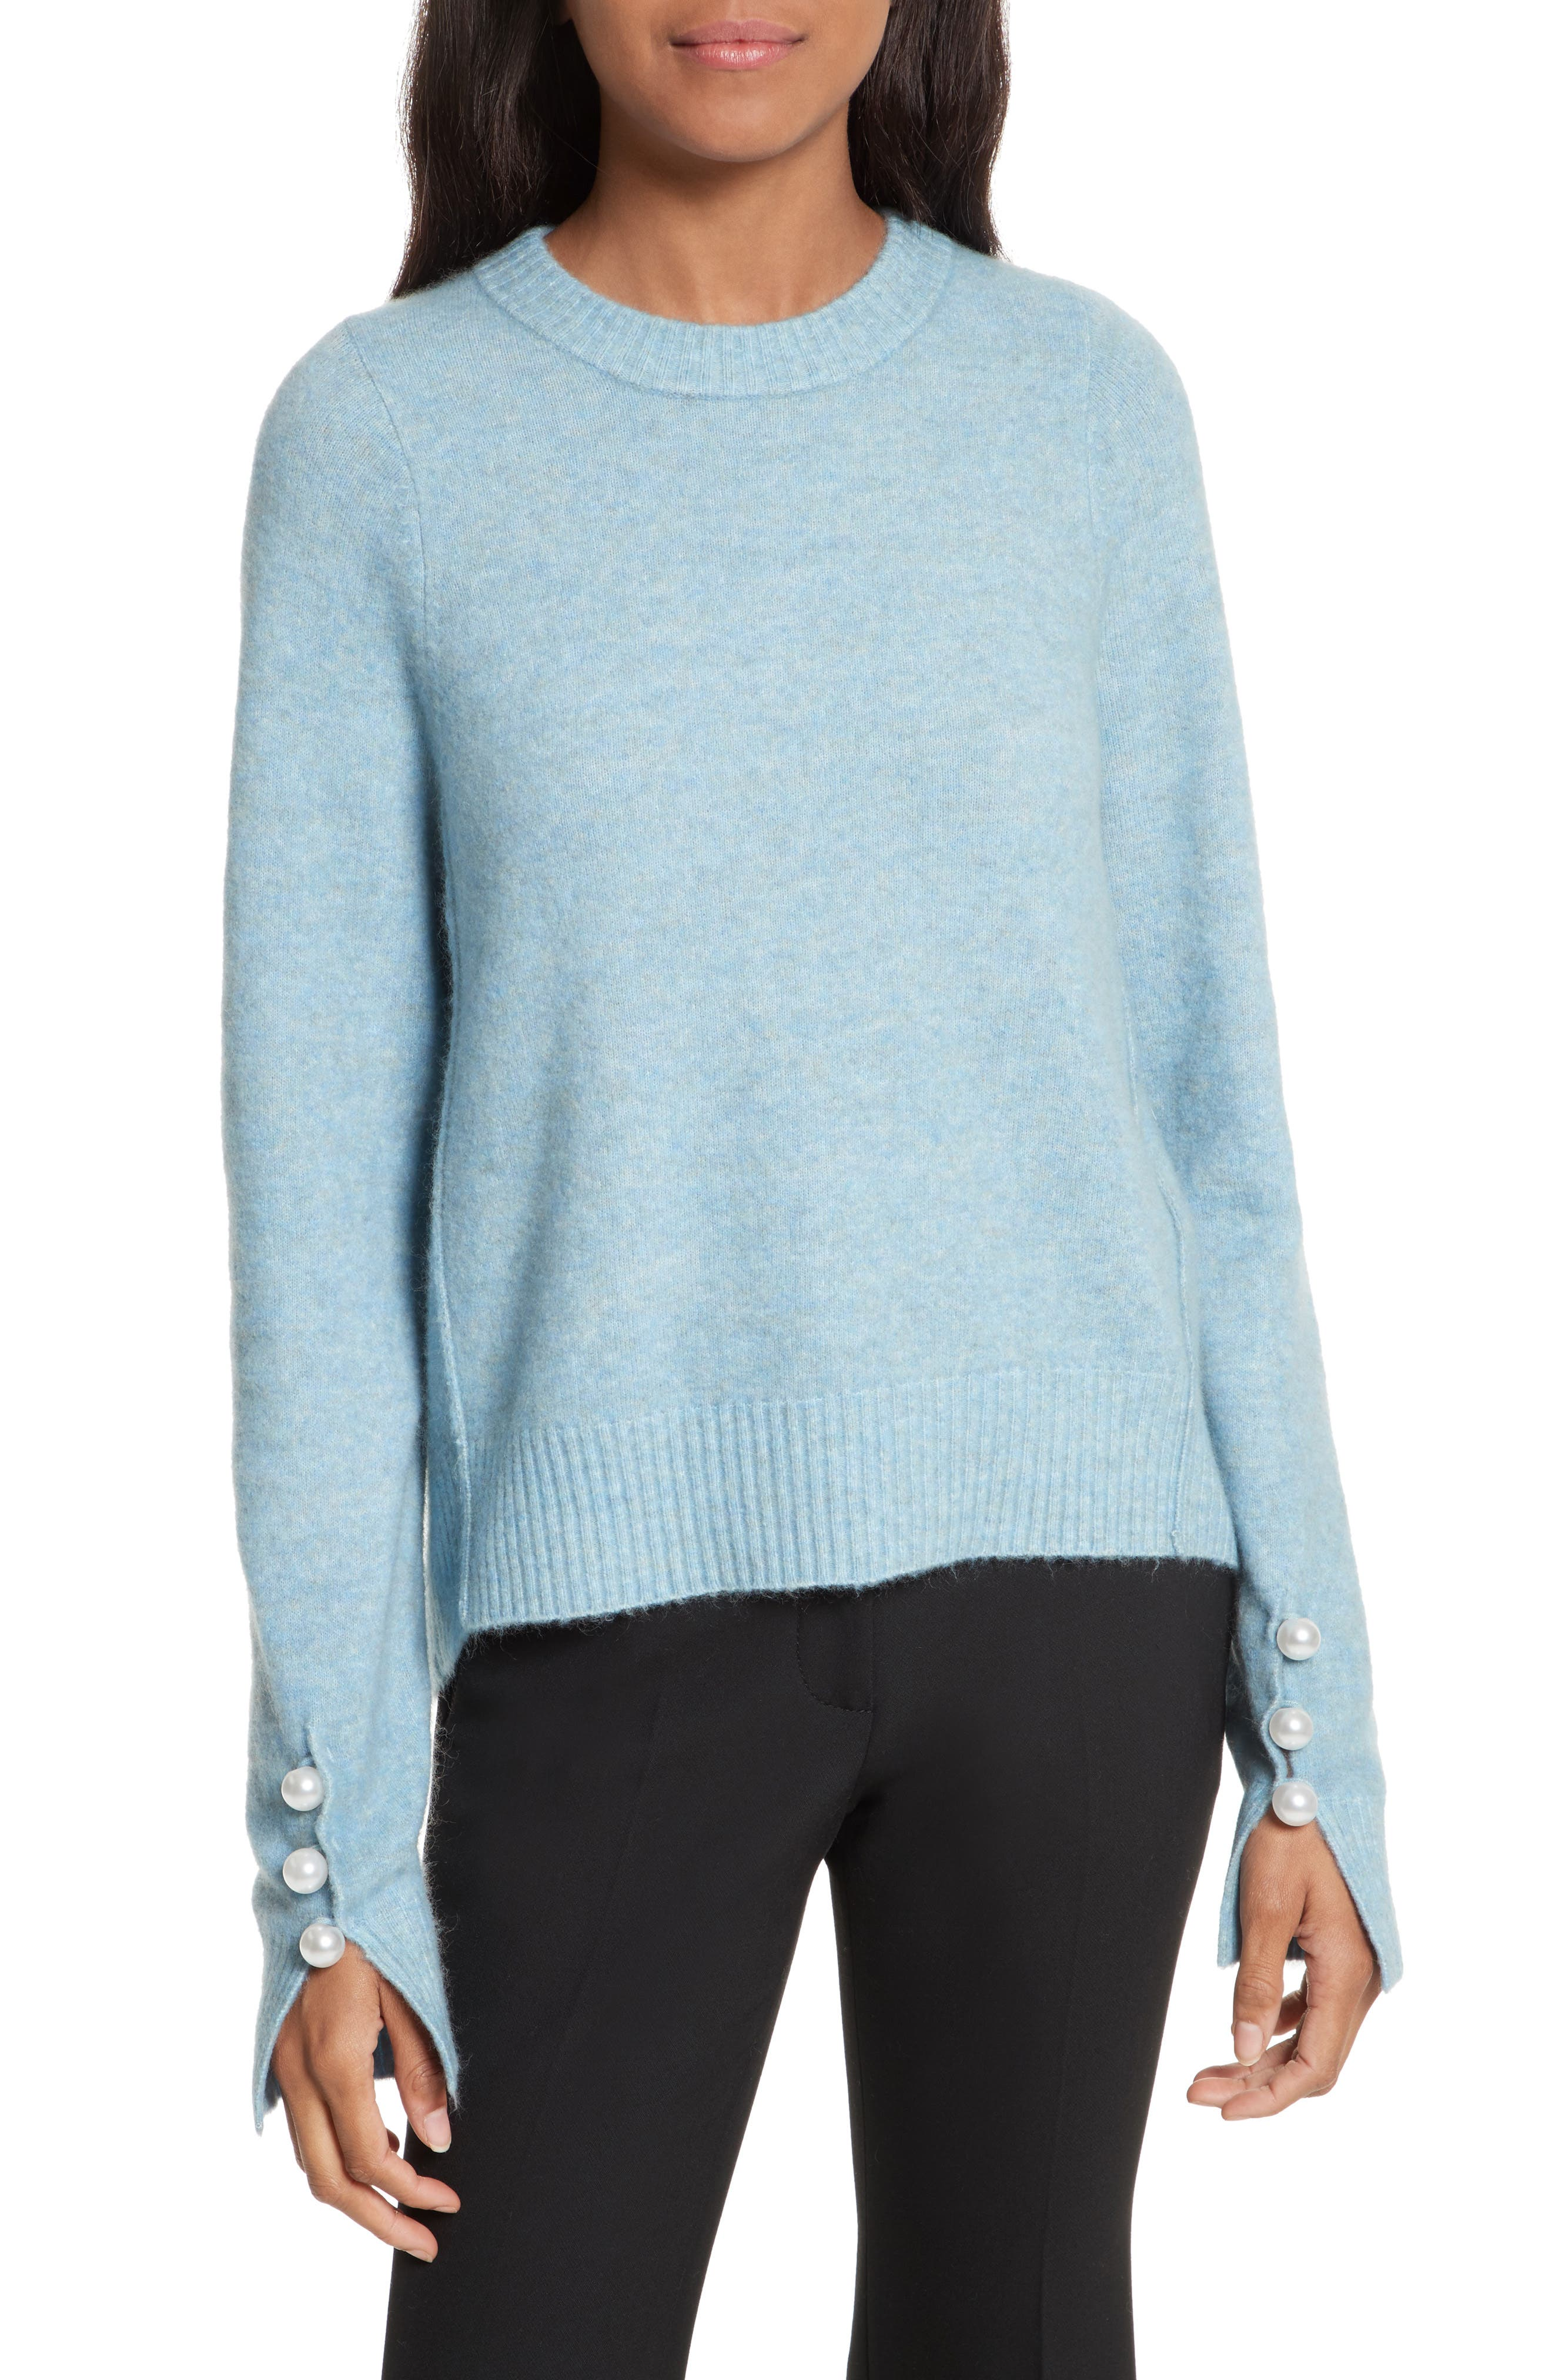 Main Image - 3.1 Phillip Lim Faux Pearl Cuff Knit Pullover